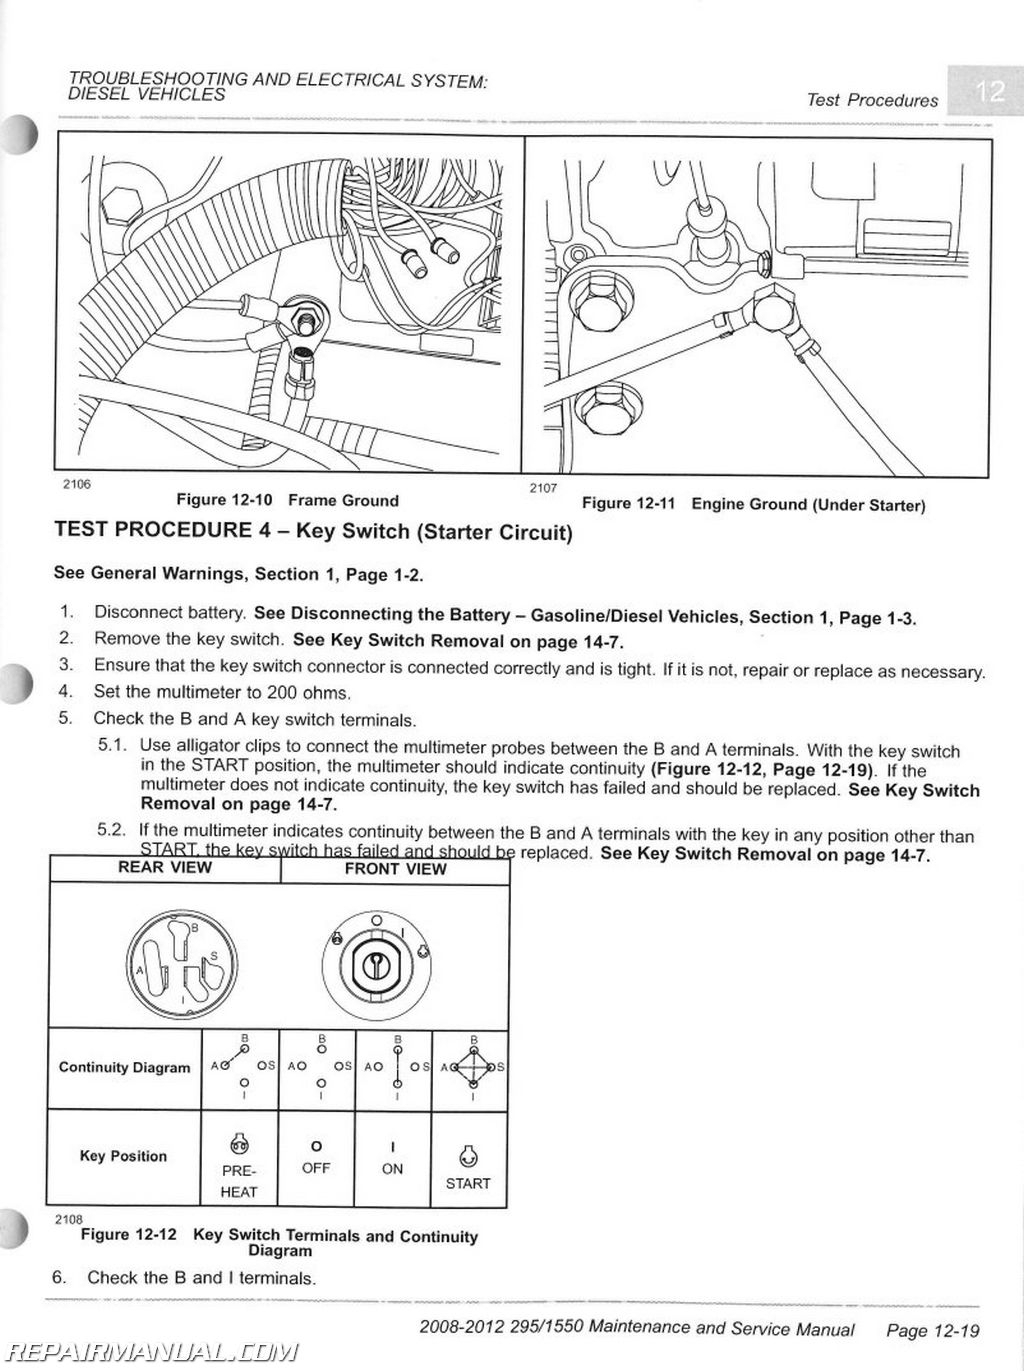 ingersoll rand club car wiring diagram in luxury parts 43 in inside club car golf cart parts diagram club car golf cart parts diagram automotive parts diagram images ingersoll rand club car wiring diagram at bayanpartner.co